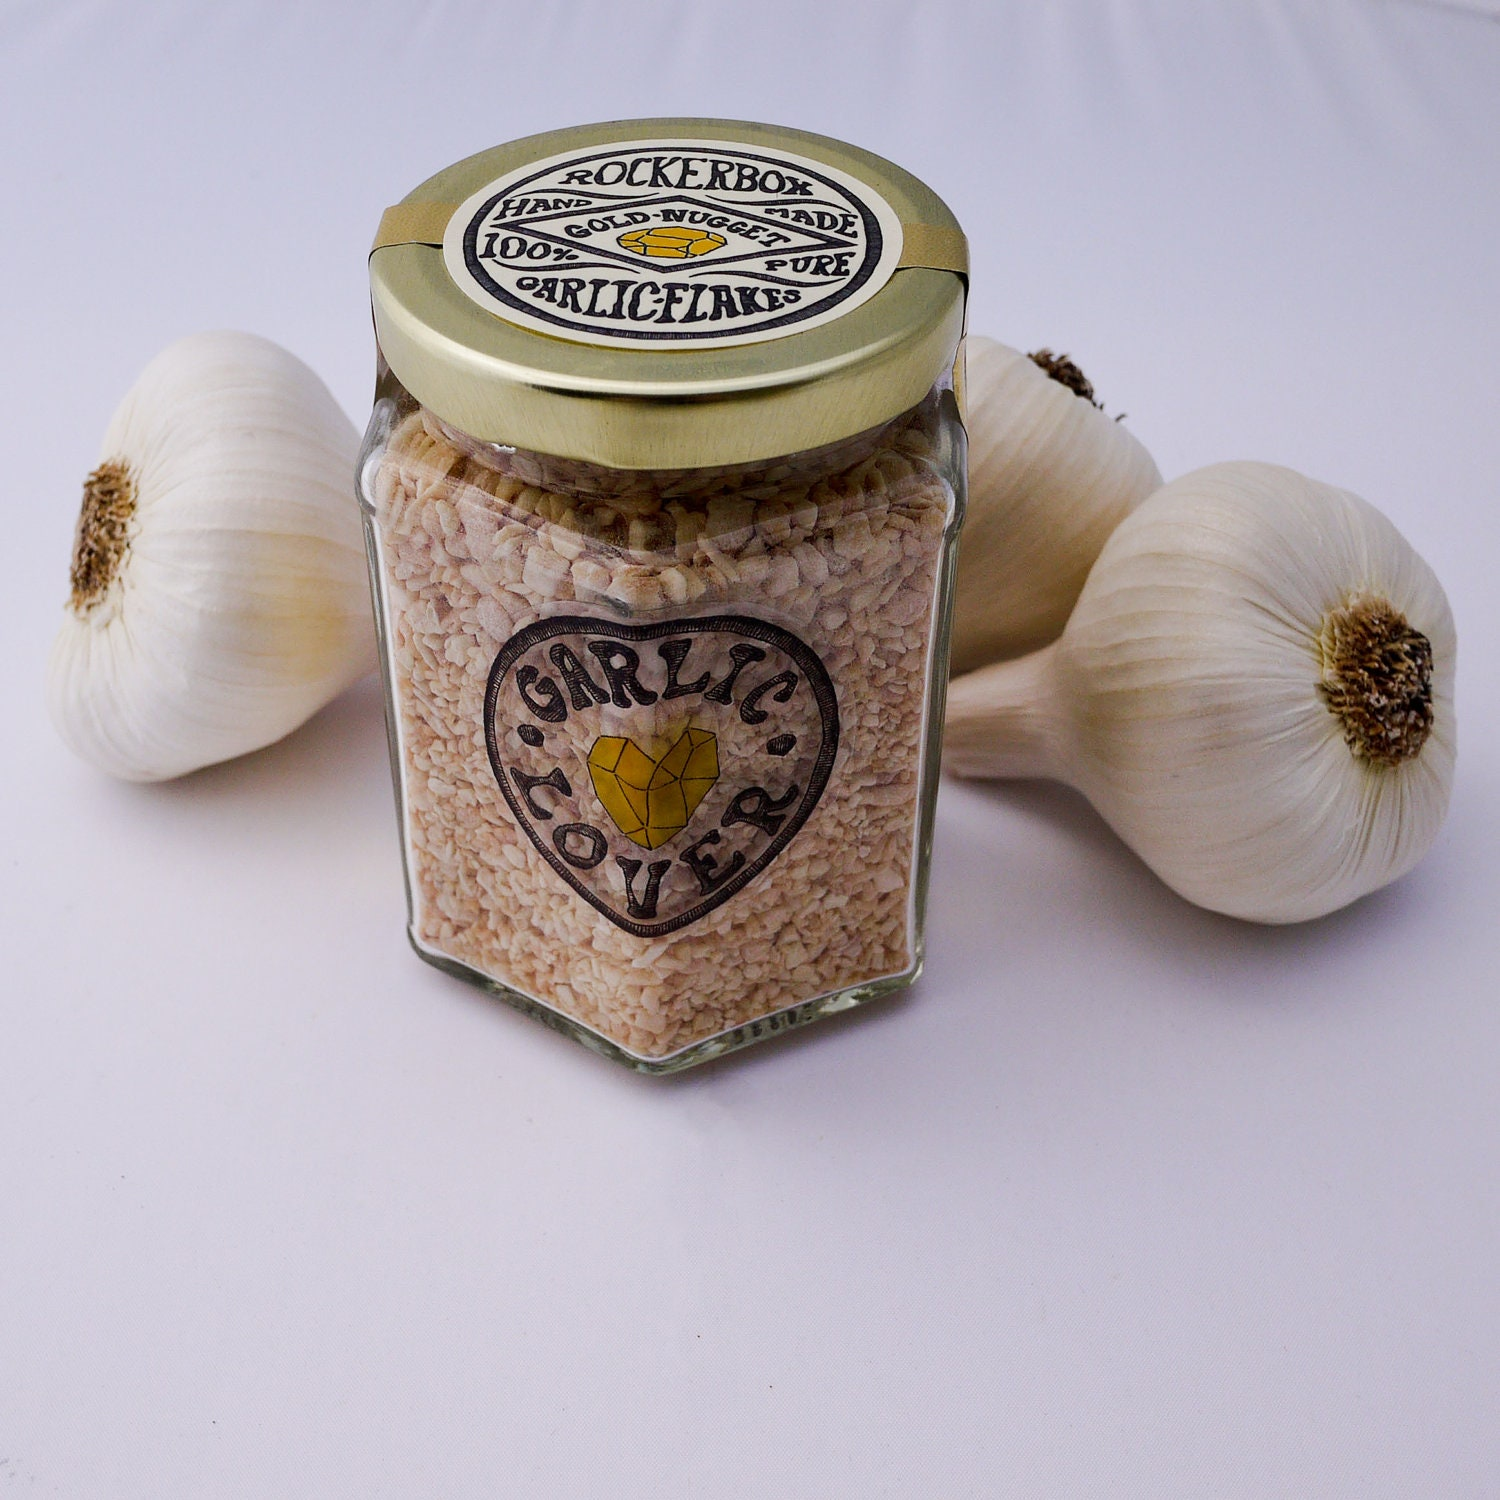 Gourmet Garlic Flakes, Garlic Lover's Size - 12 oz total - RockerboxGarlic